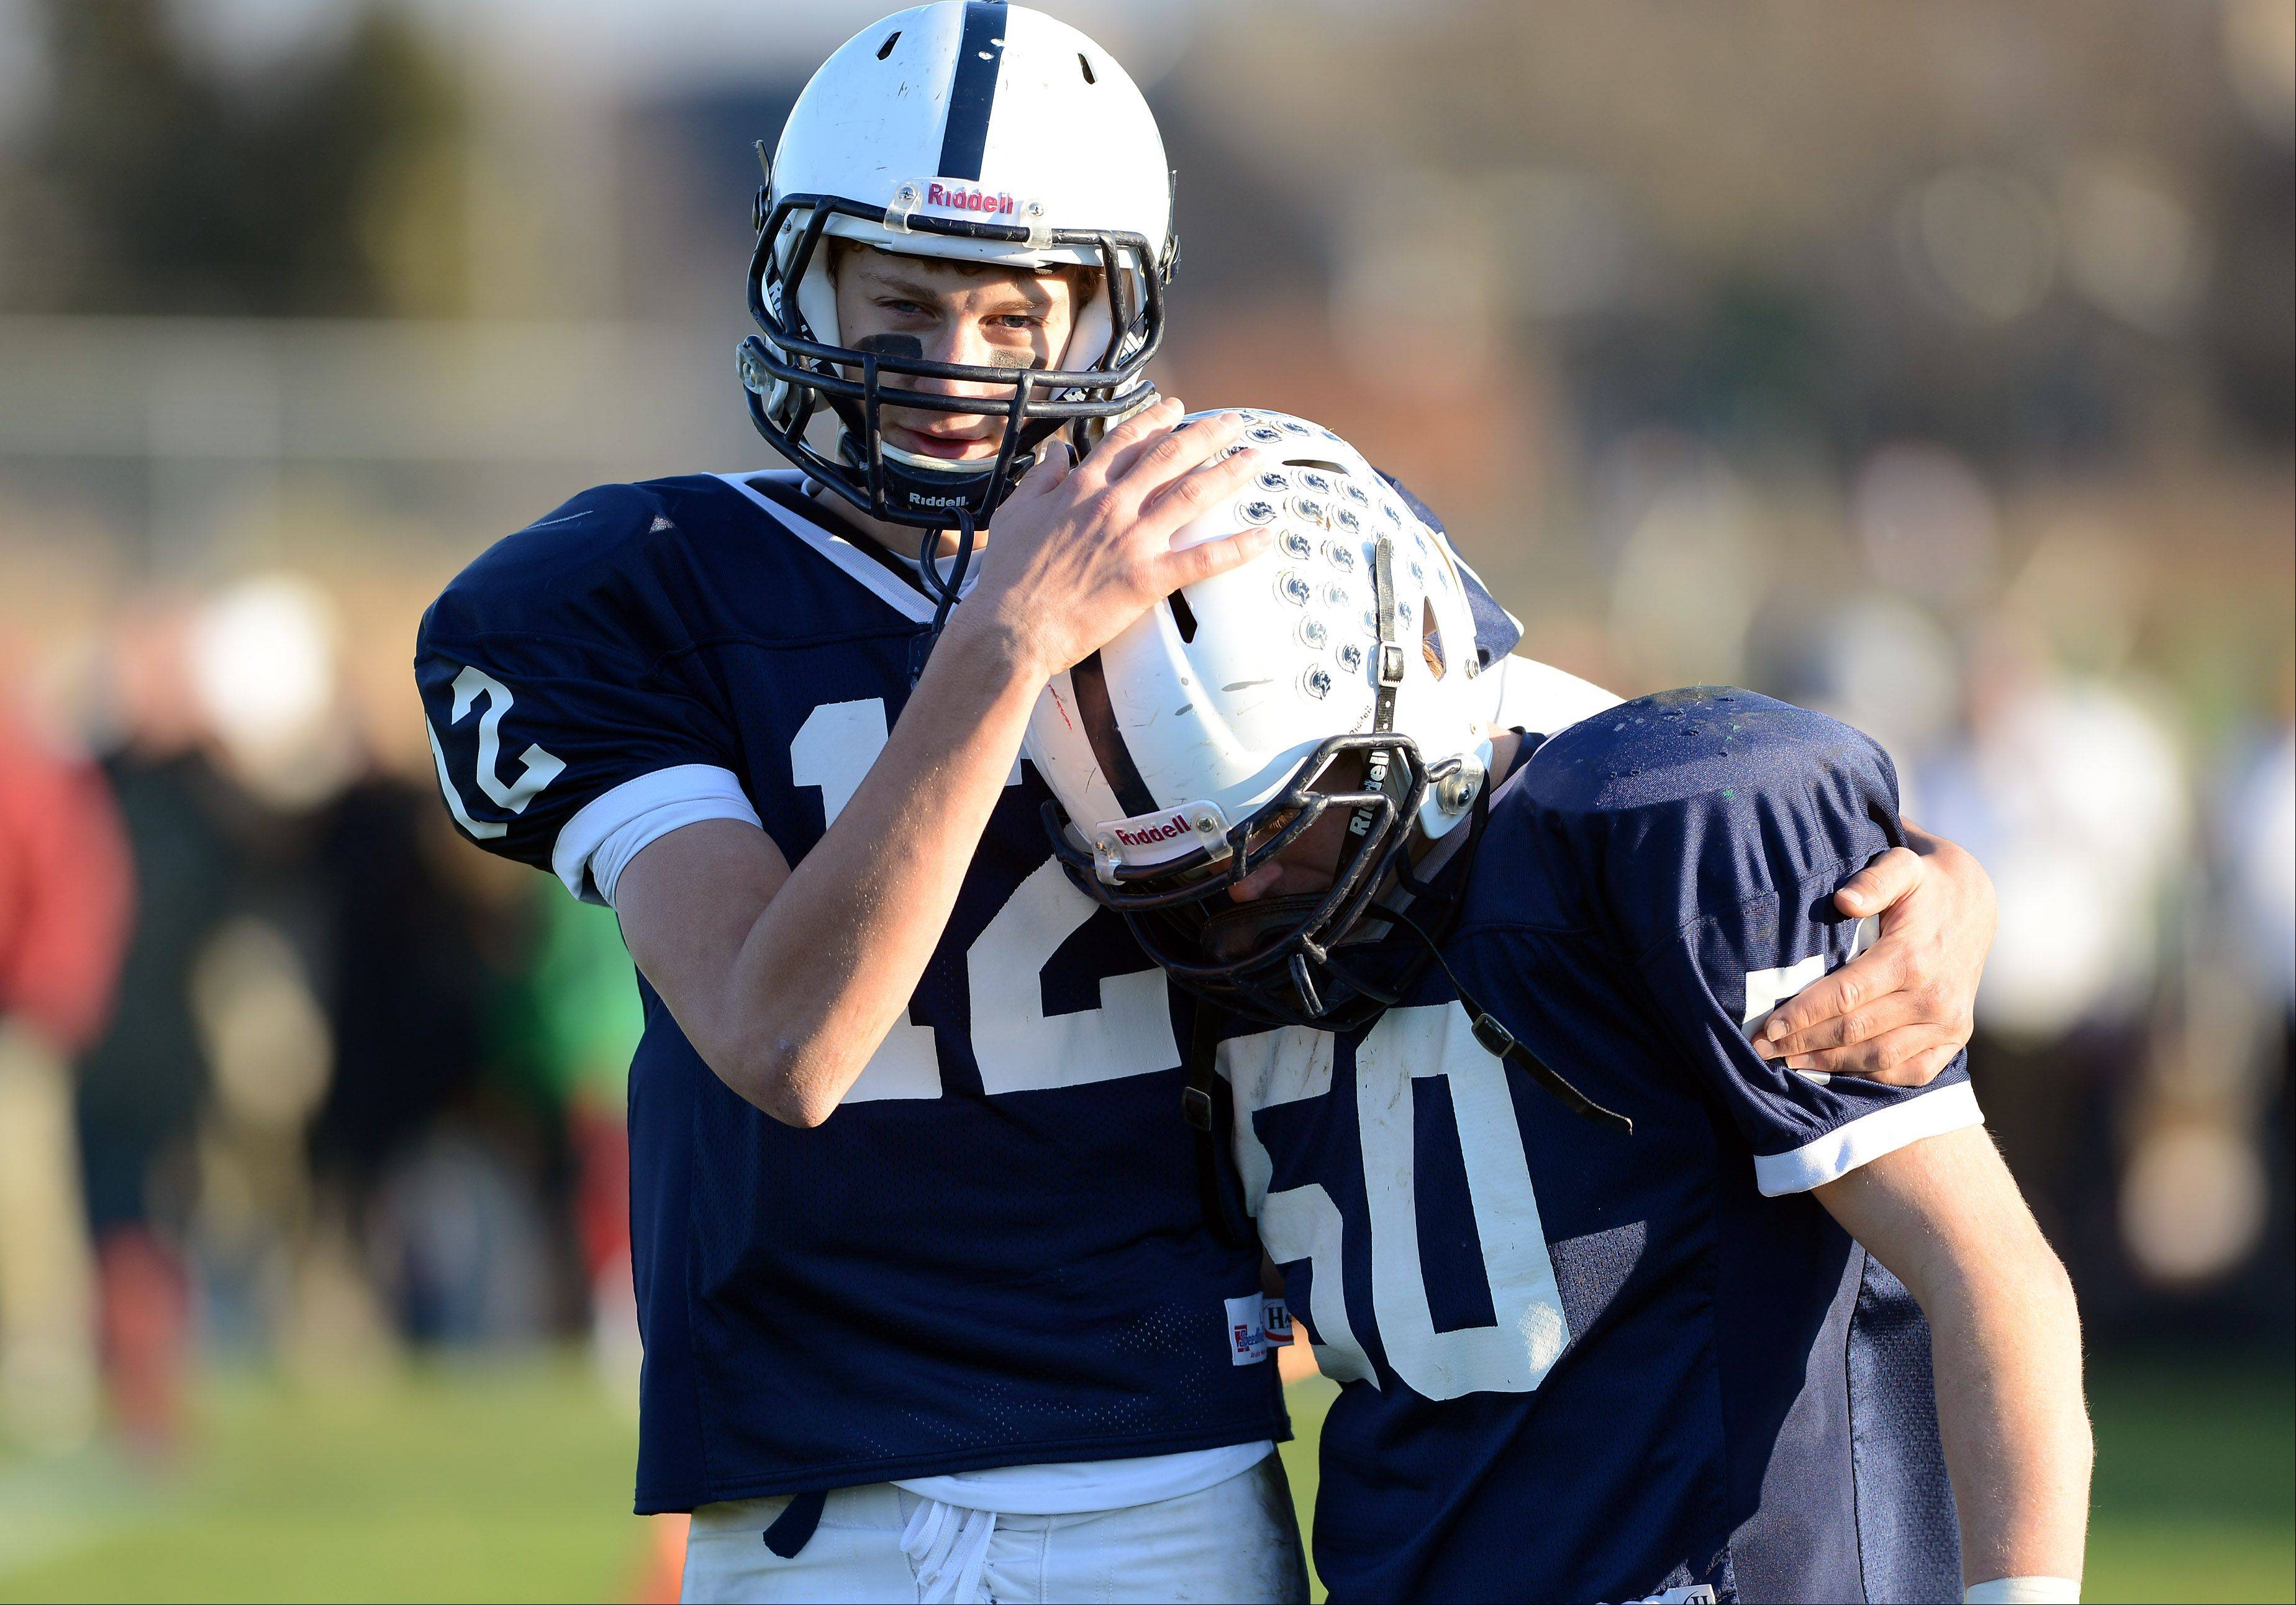 Cary-Grove's Jason Gregoire (12) consoles teammate Emerson Kersten (50) after their loss to Rockford Boylan Saturday in Cary.